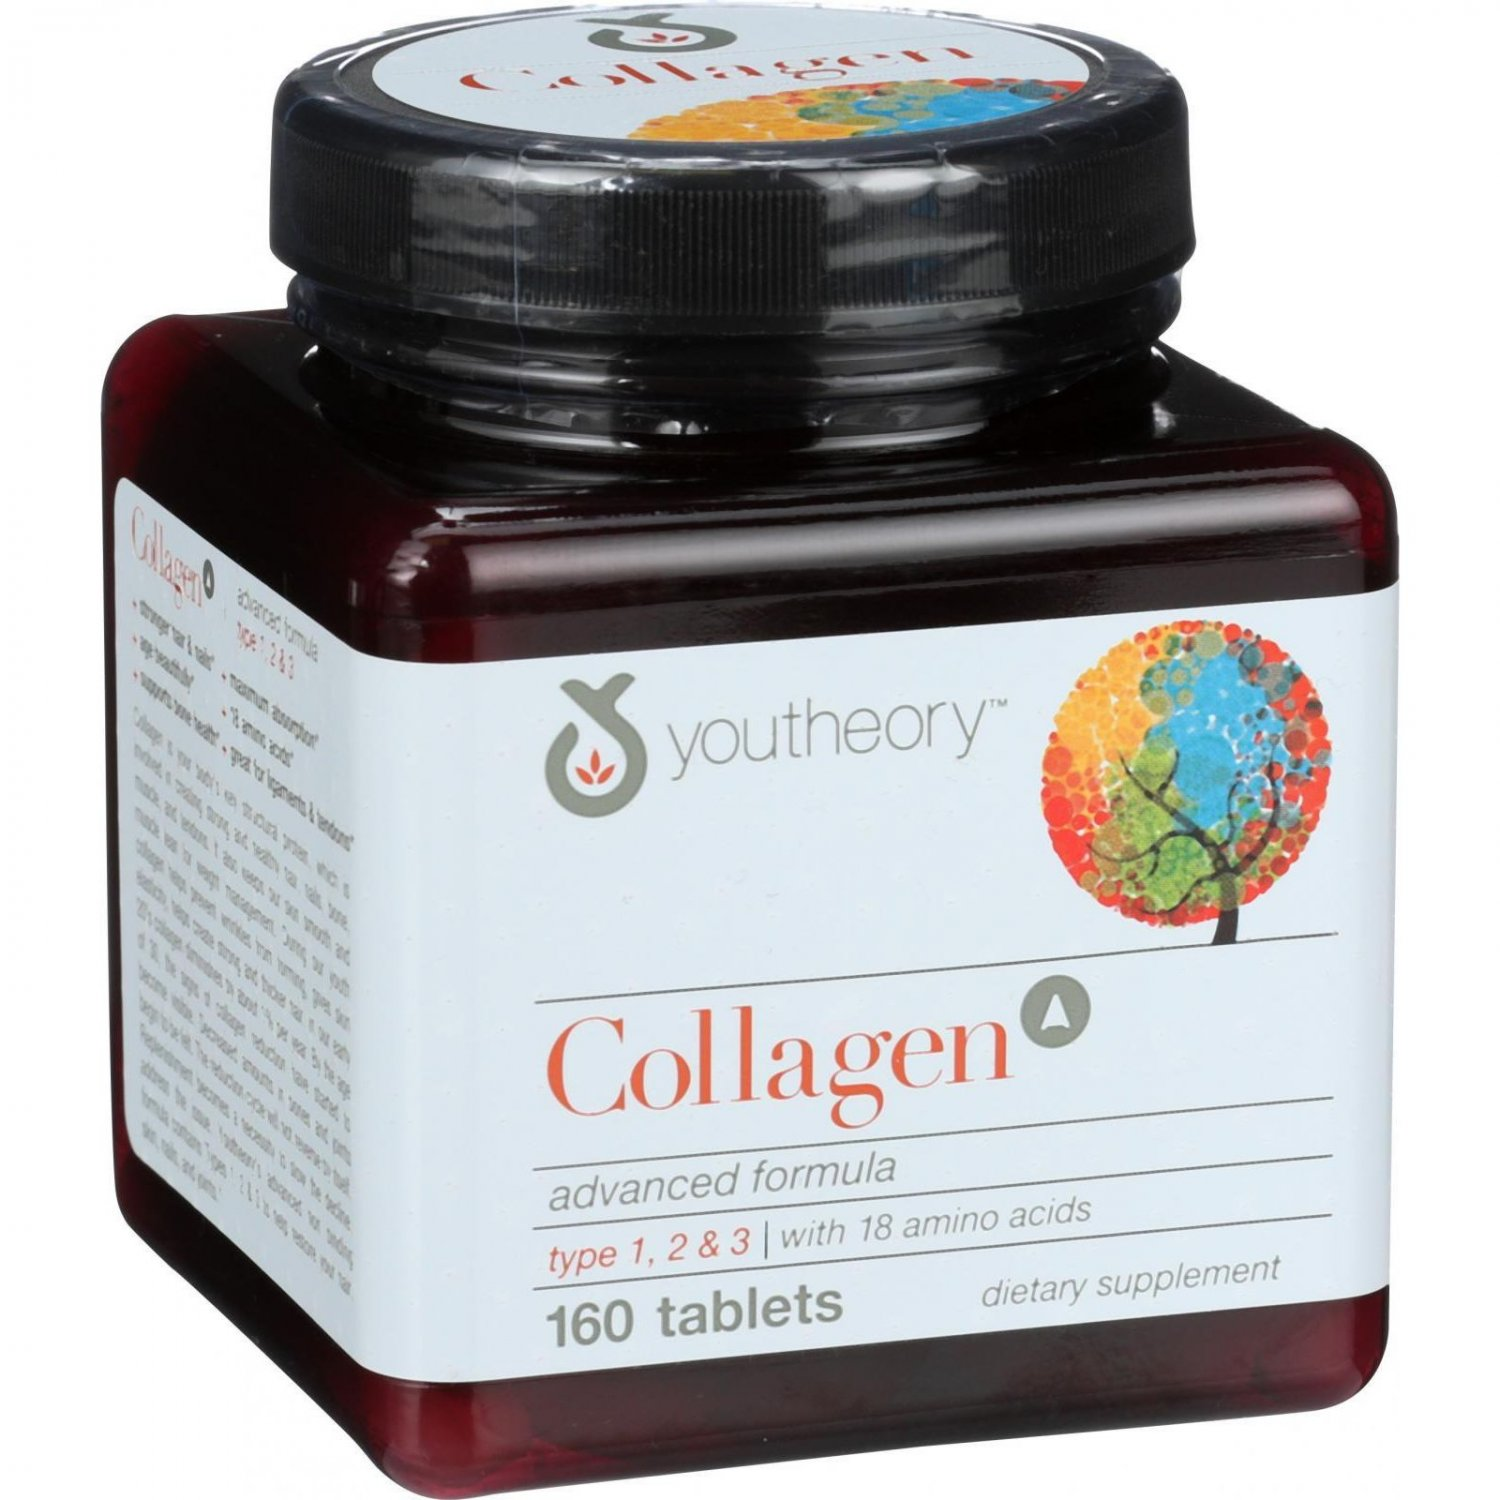 Youtheory Collagen - Type 1 and 2 and 3 - Advanced Formula - 160 Tablets